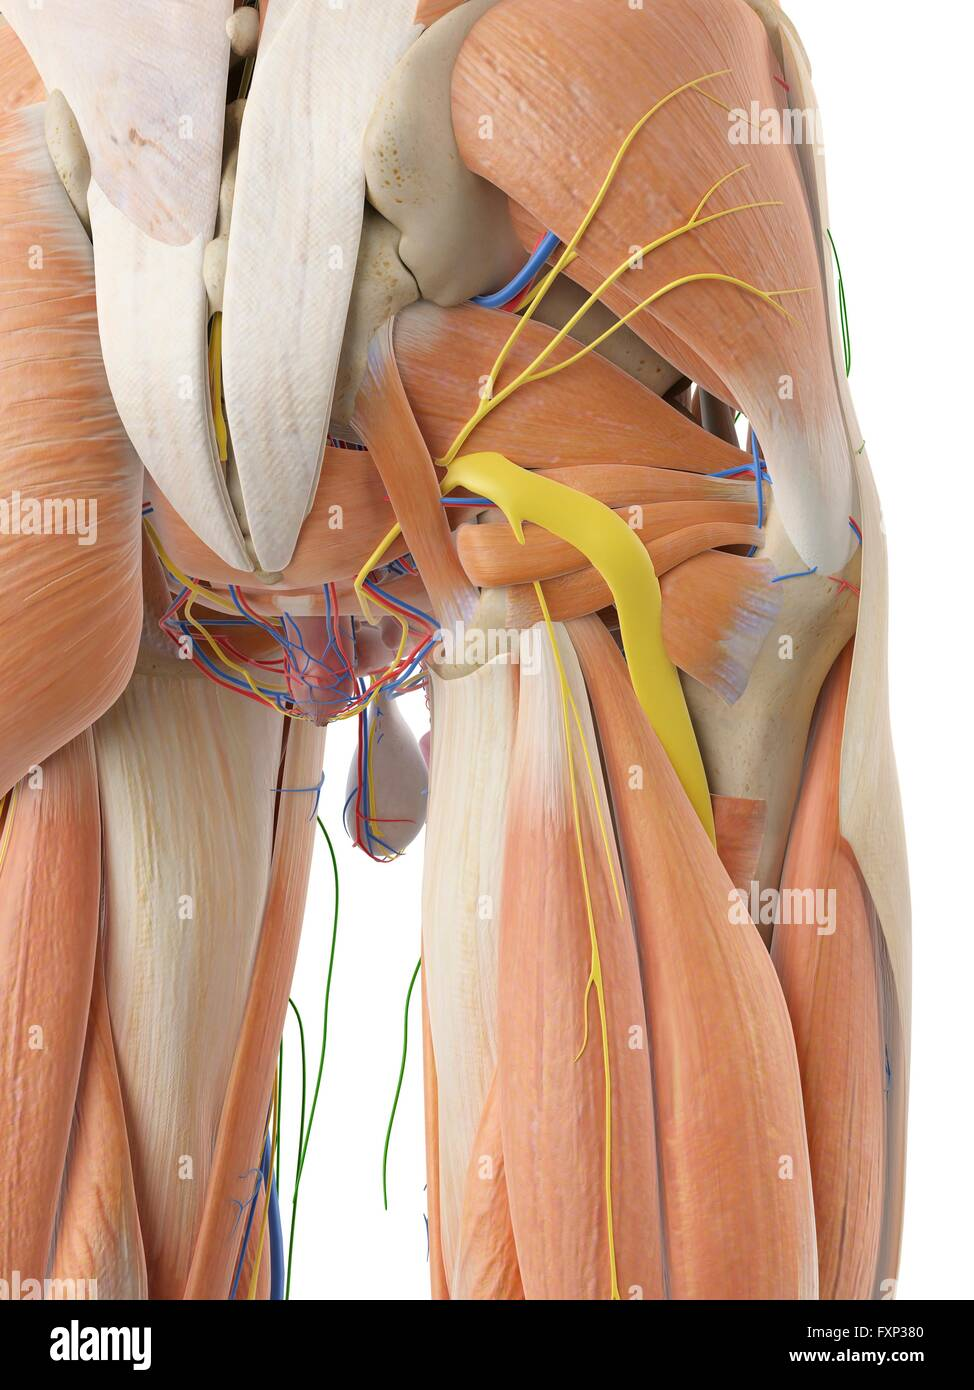 Anatomy Of Human Buttocks Stock Photos Anatomy Of Human Buttocks